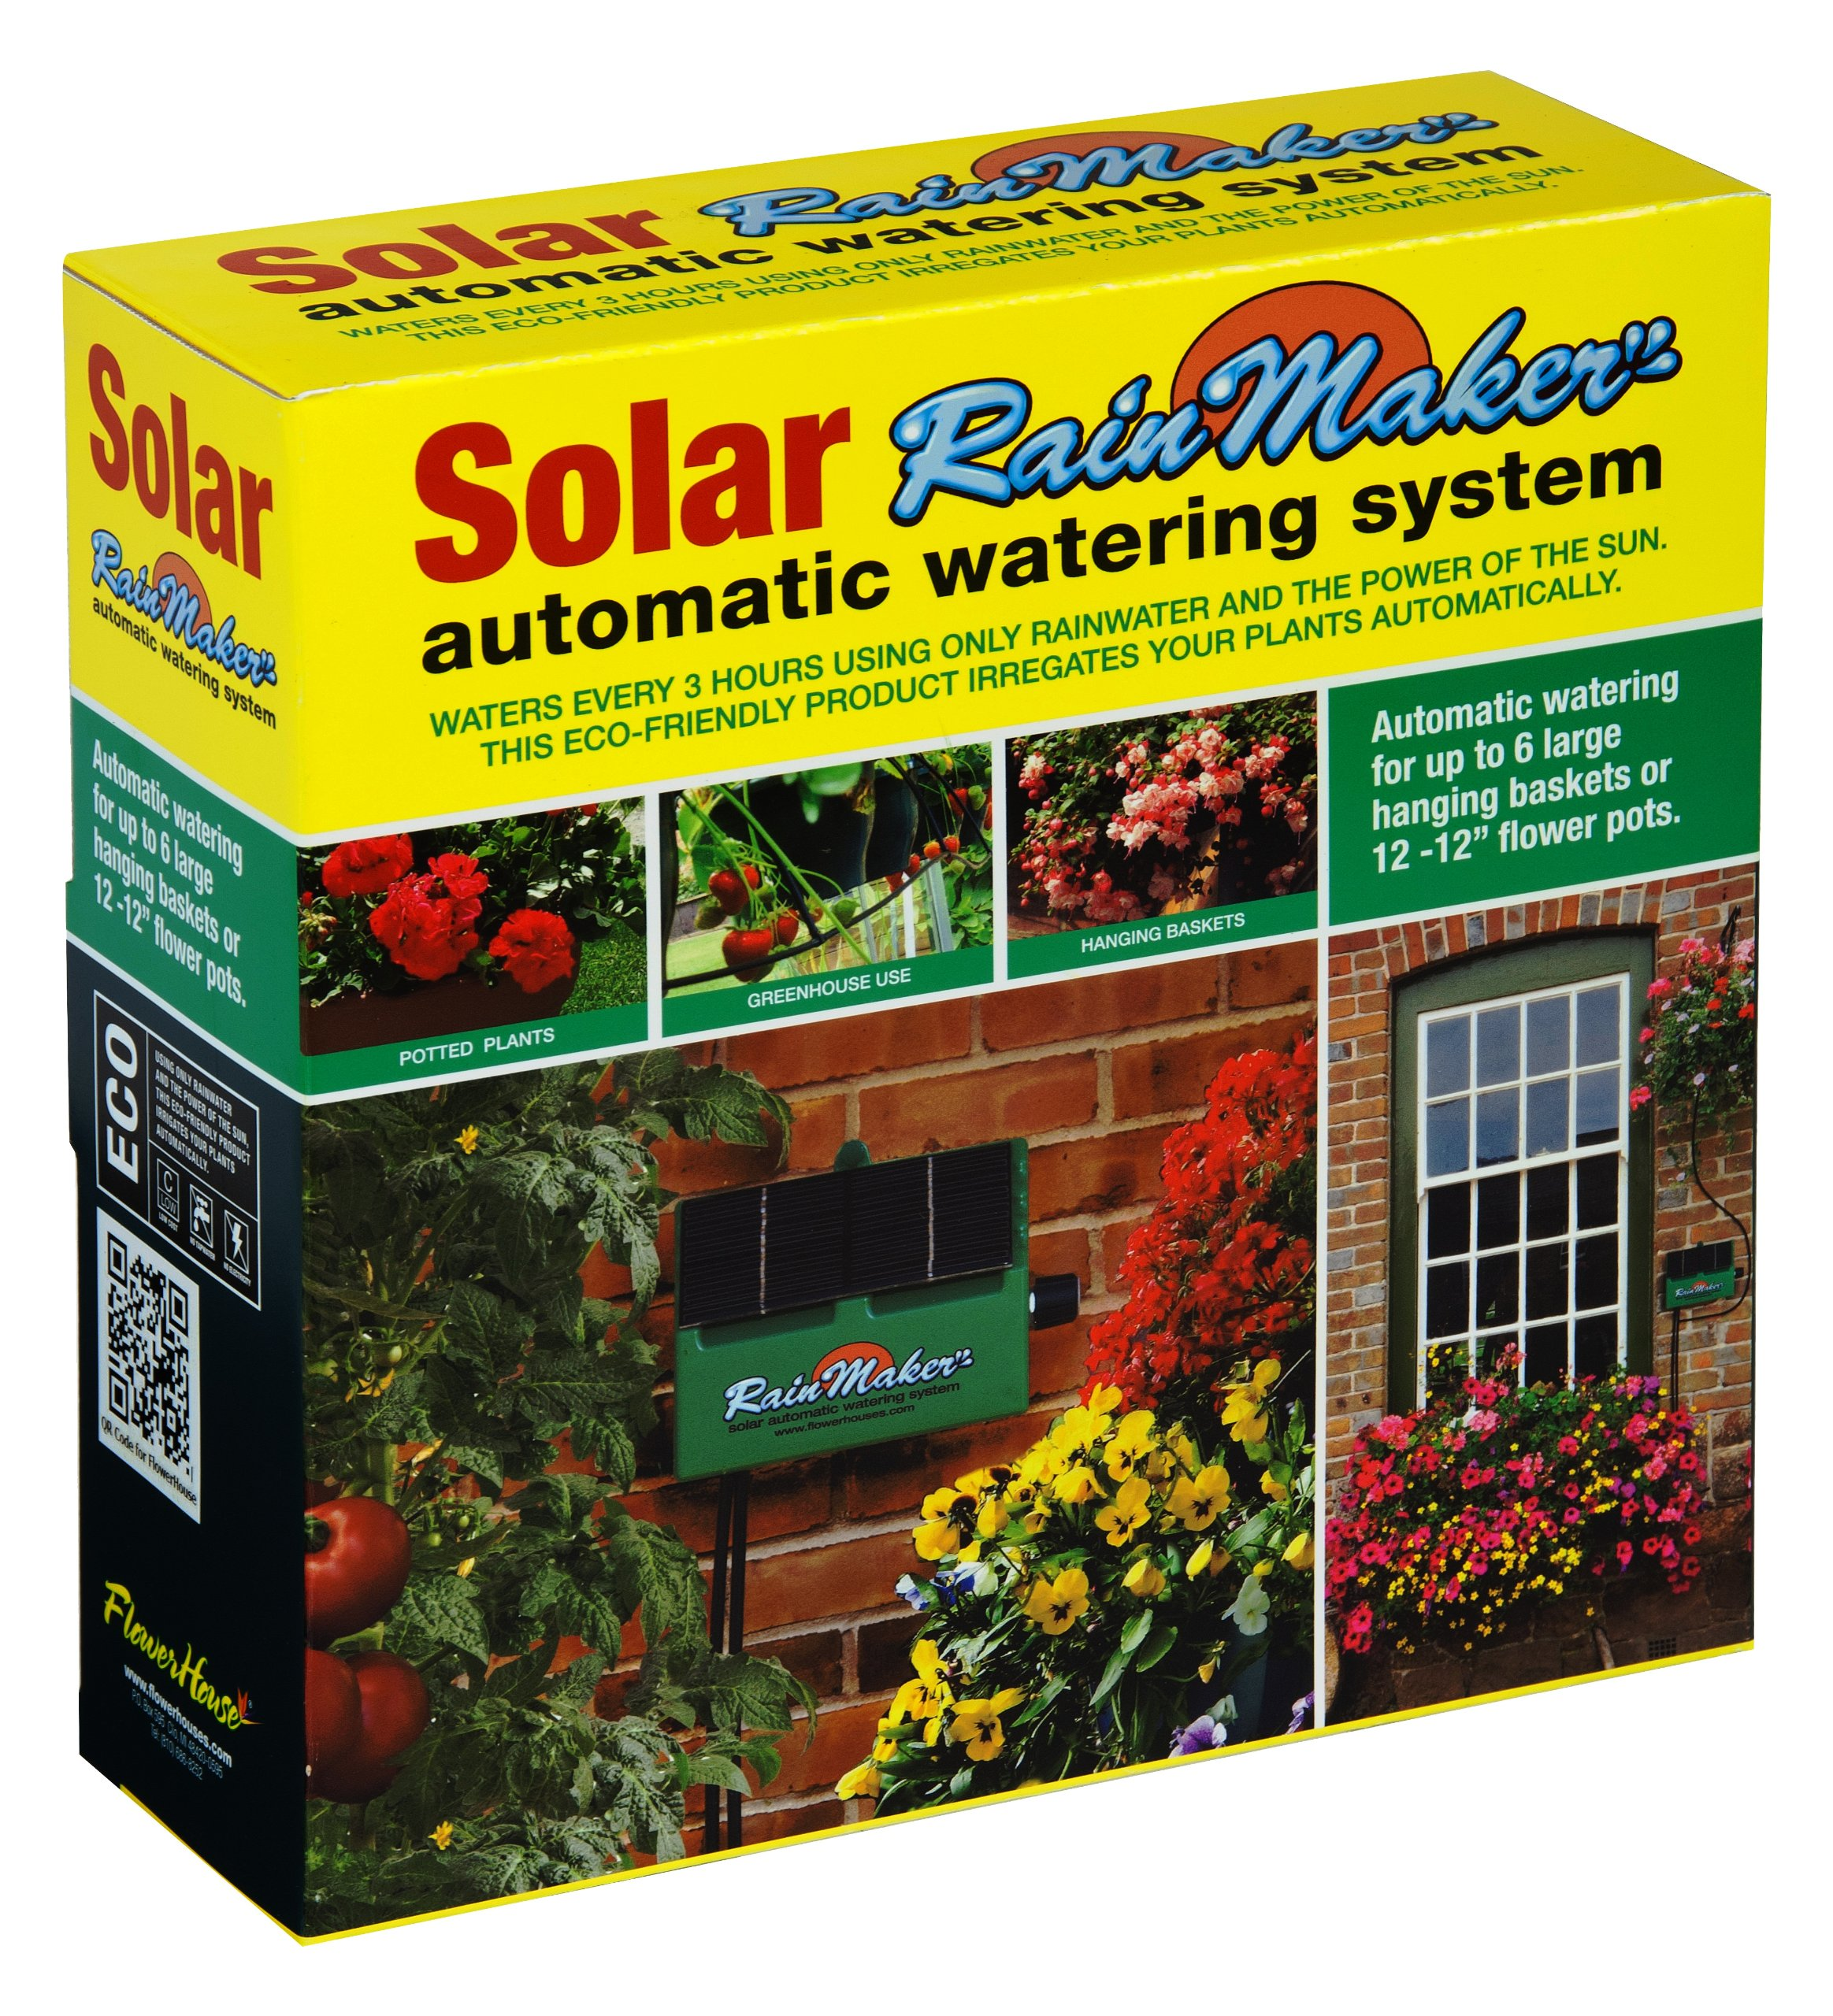 Flower House SOL-K12 Solar RainMaker Automatic Watering System by Flower House